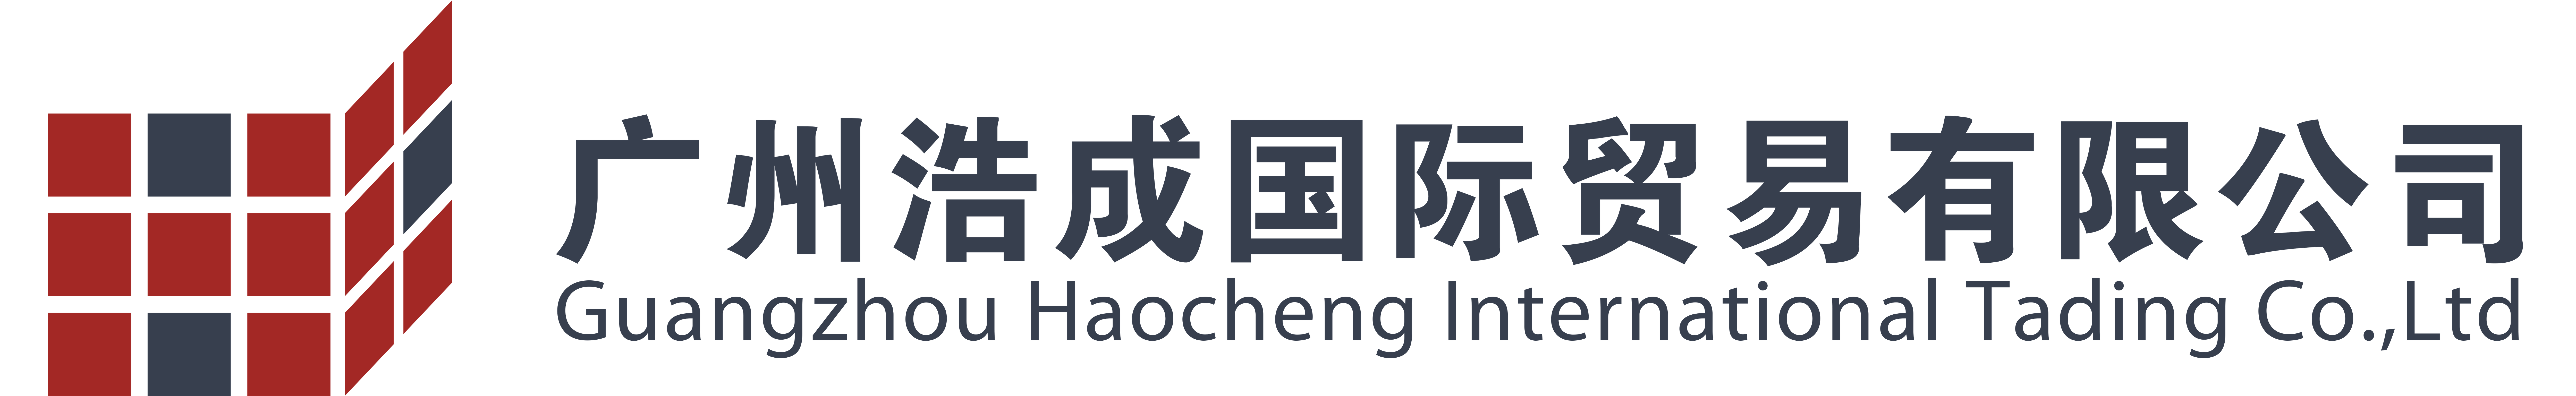 Products-Guangzhou Haocheng